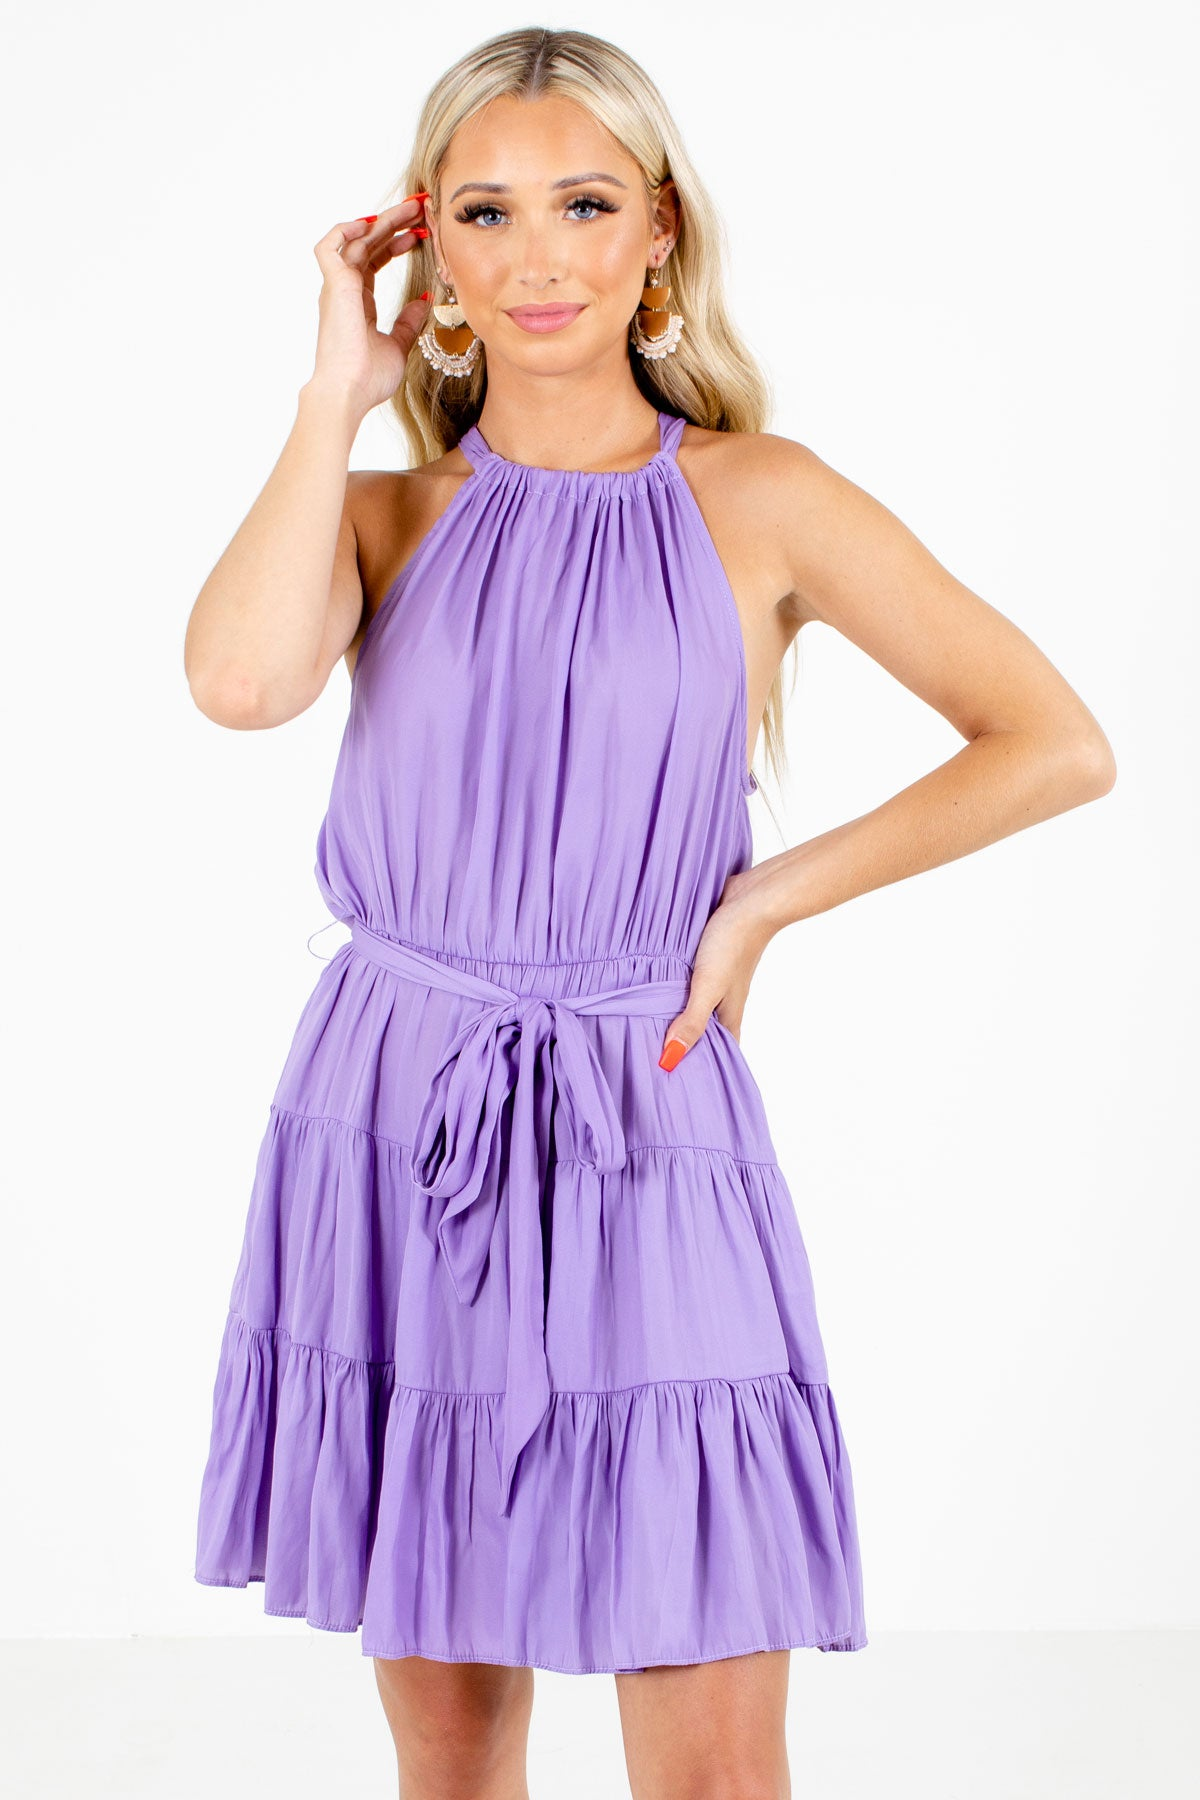 Purple Halter Style Neckline Boutique Mini Dresses for Women